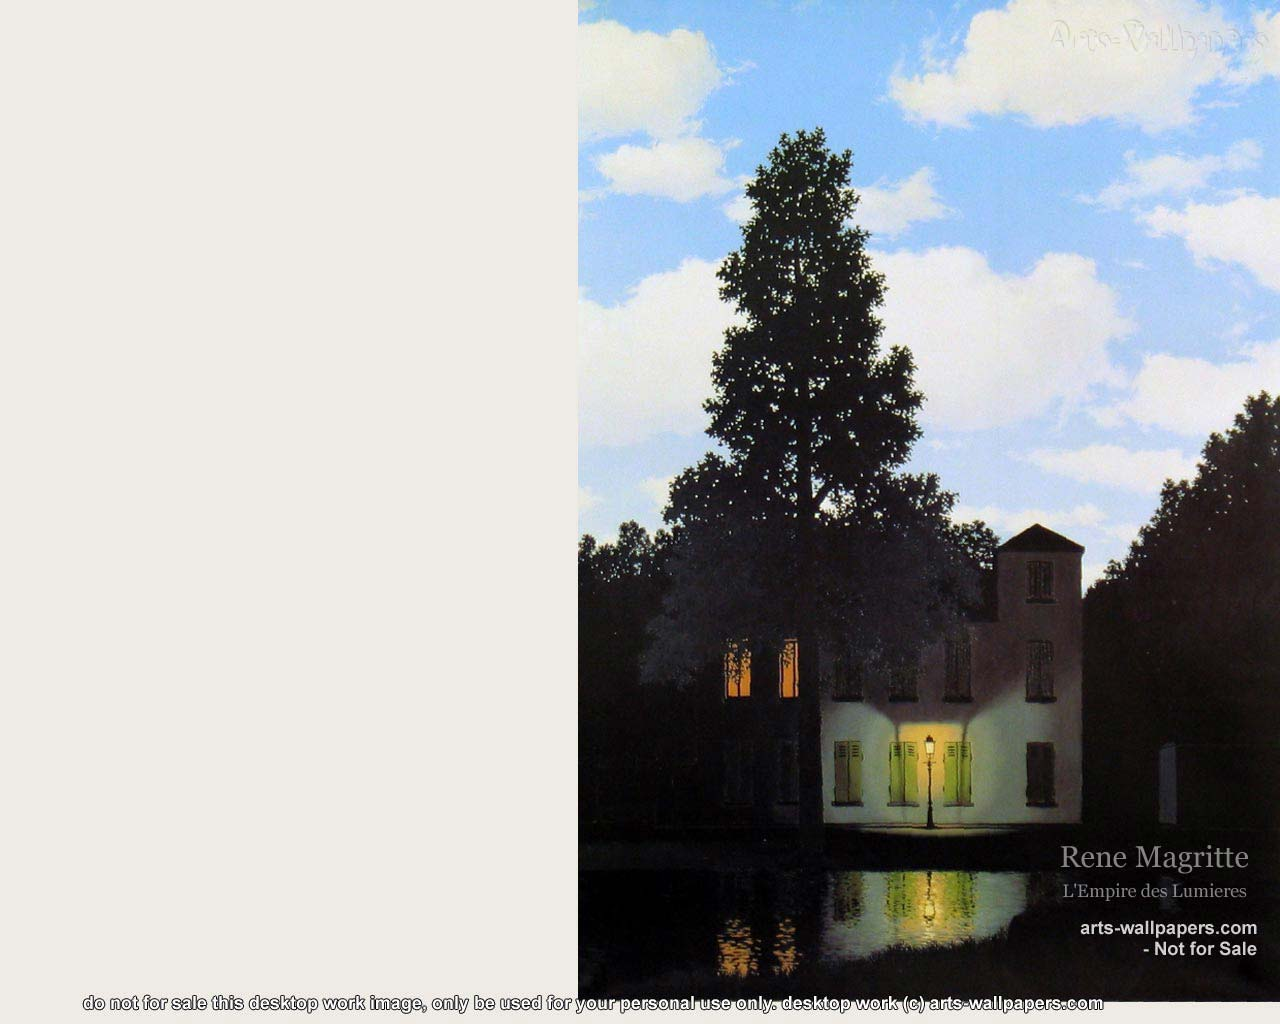 Rene Magritte Quotes QuotesGram 1280x1024